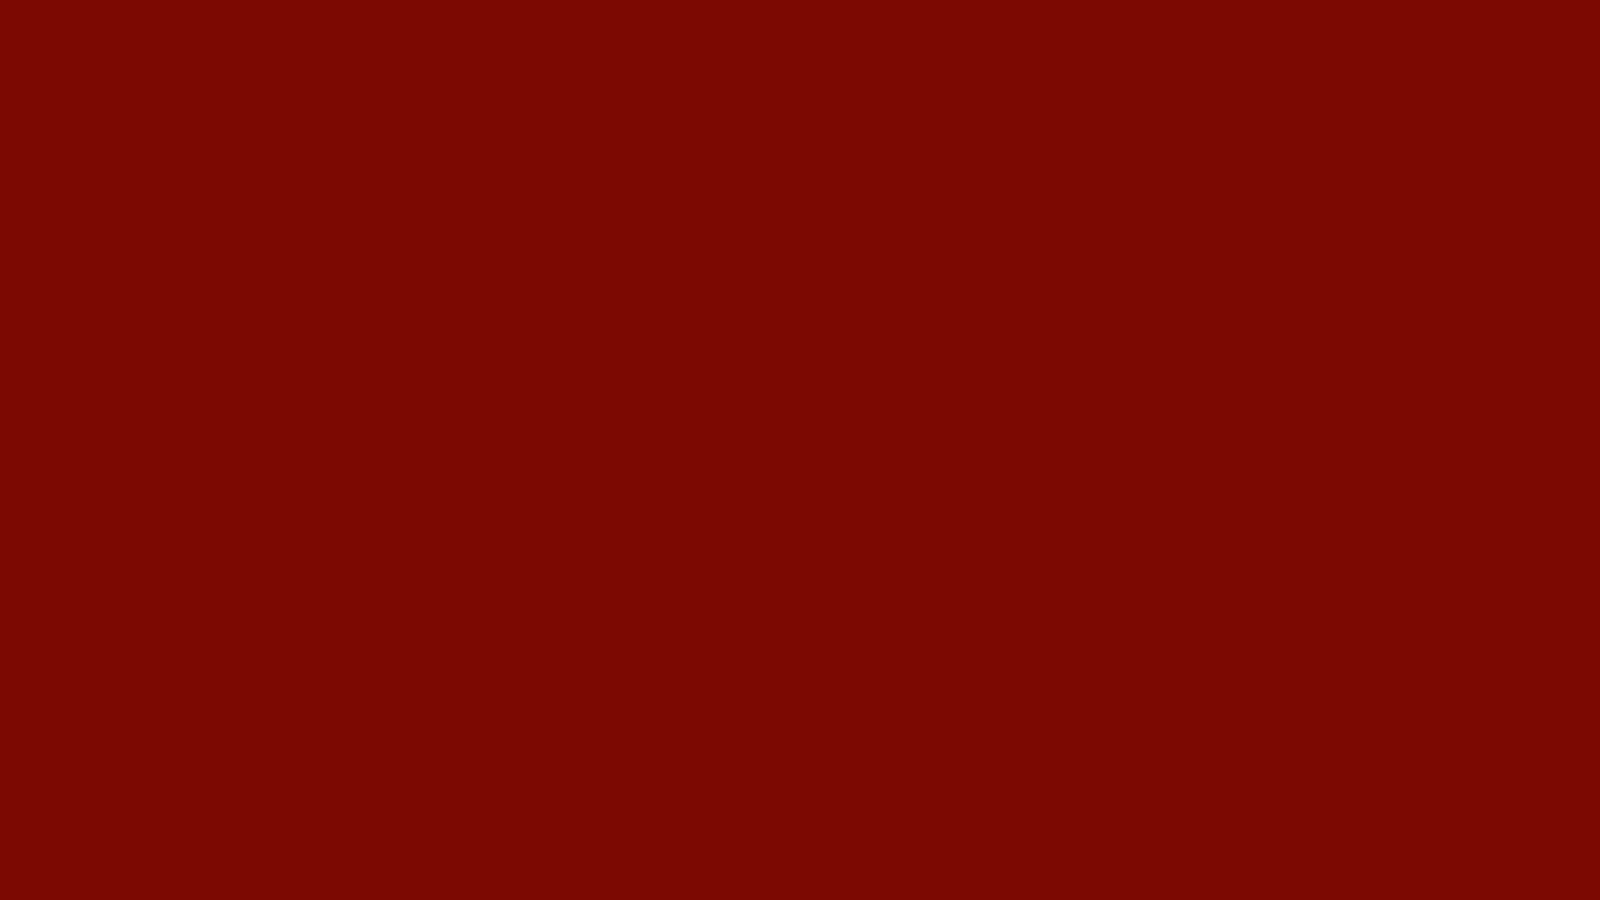 1600x900 Barn Red Solid Color Background